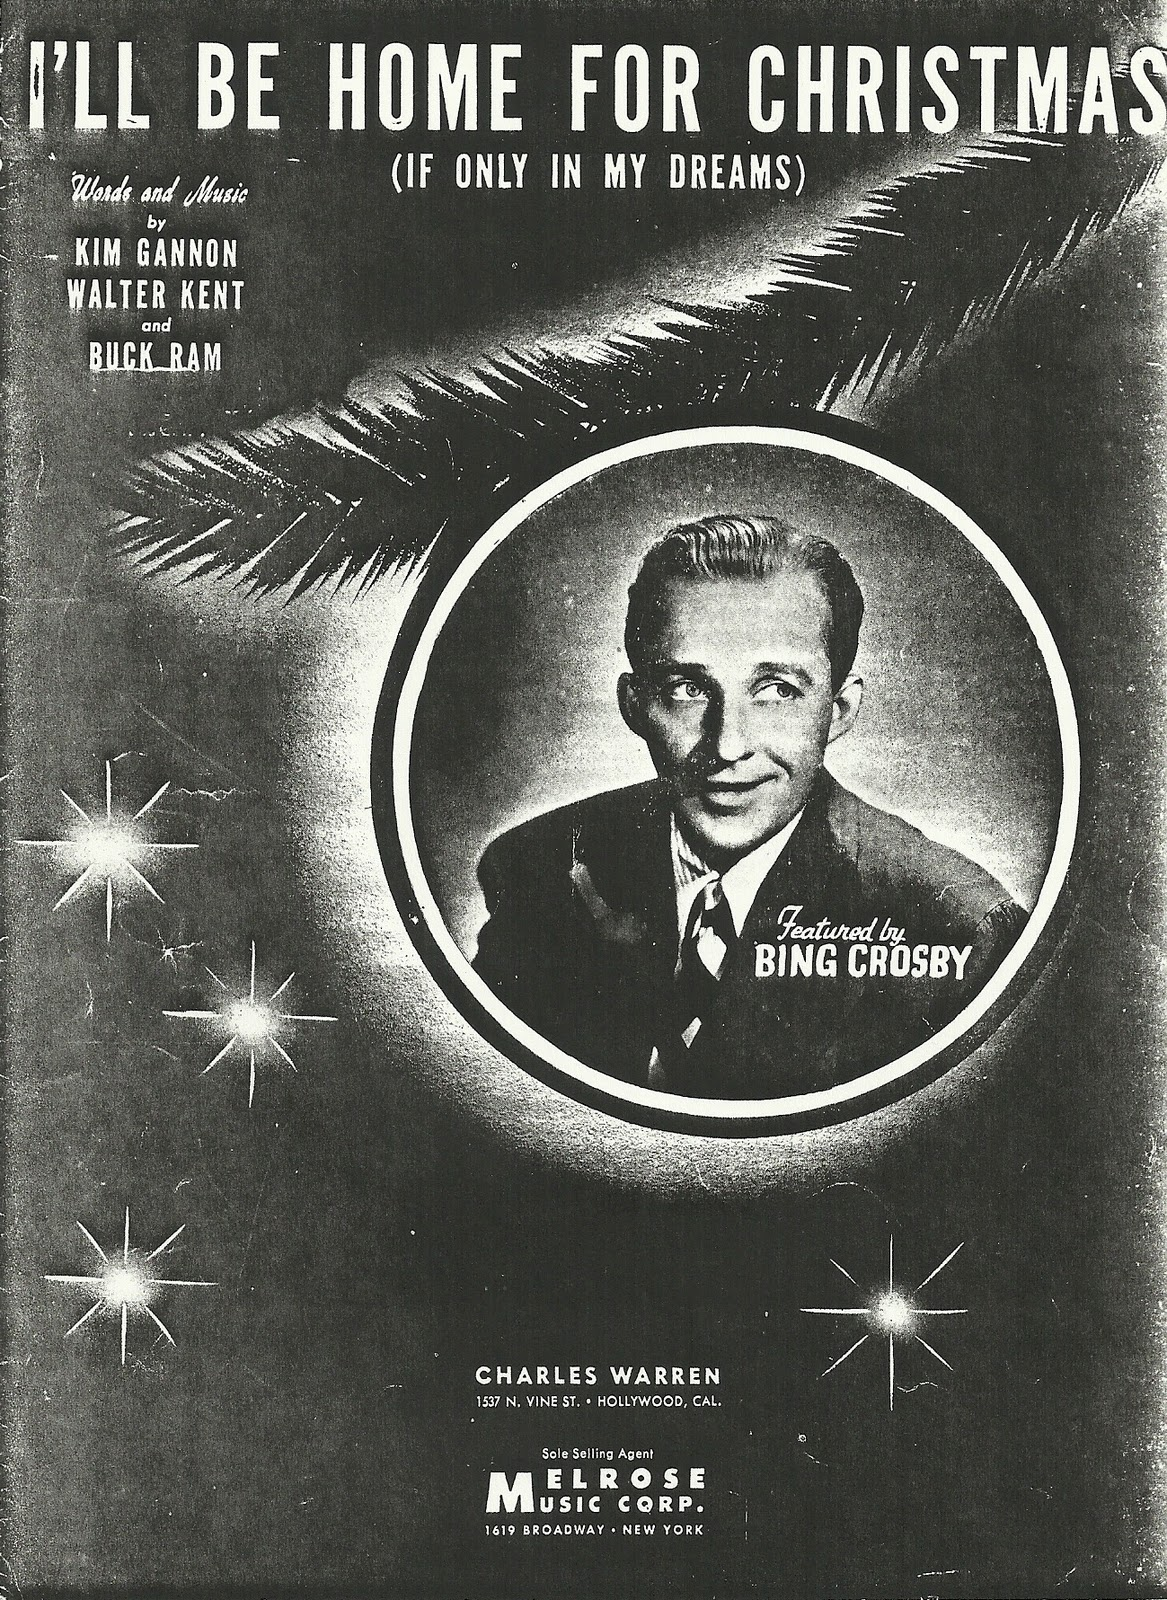 I Ll Be Home For Christmas Bing Crosby.Greenwich History I Ll Be Home For Christmas As Promised